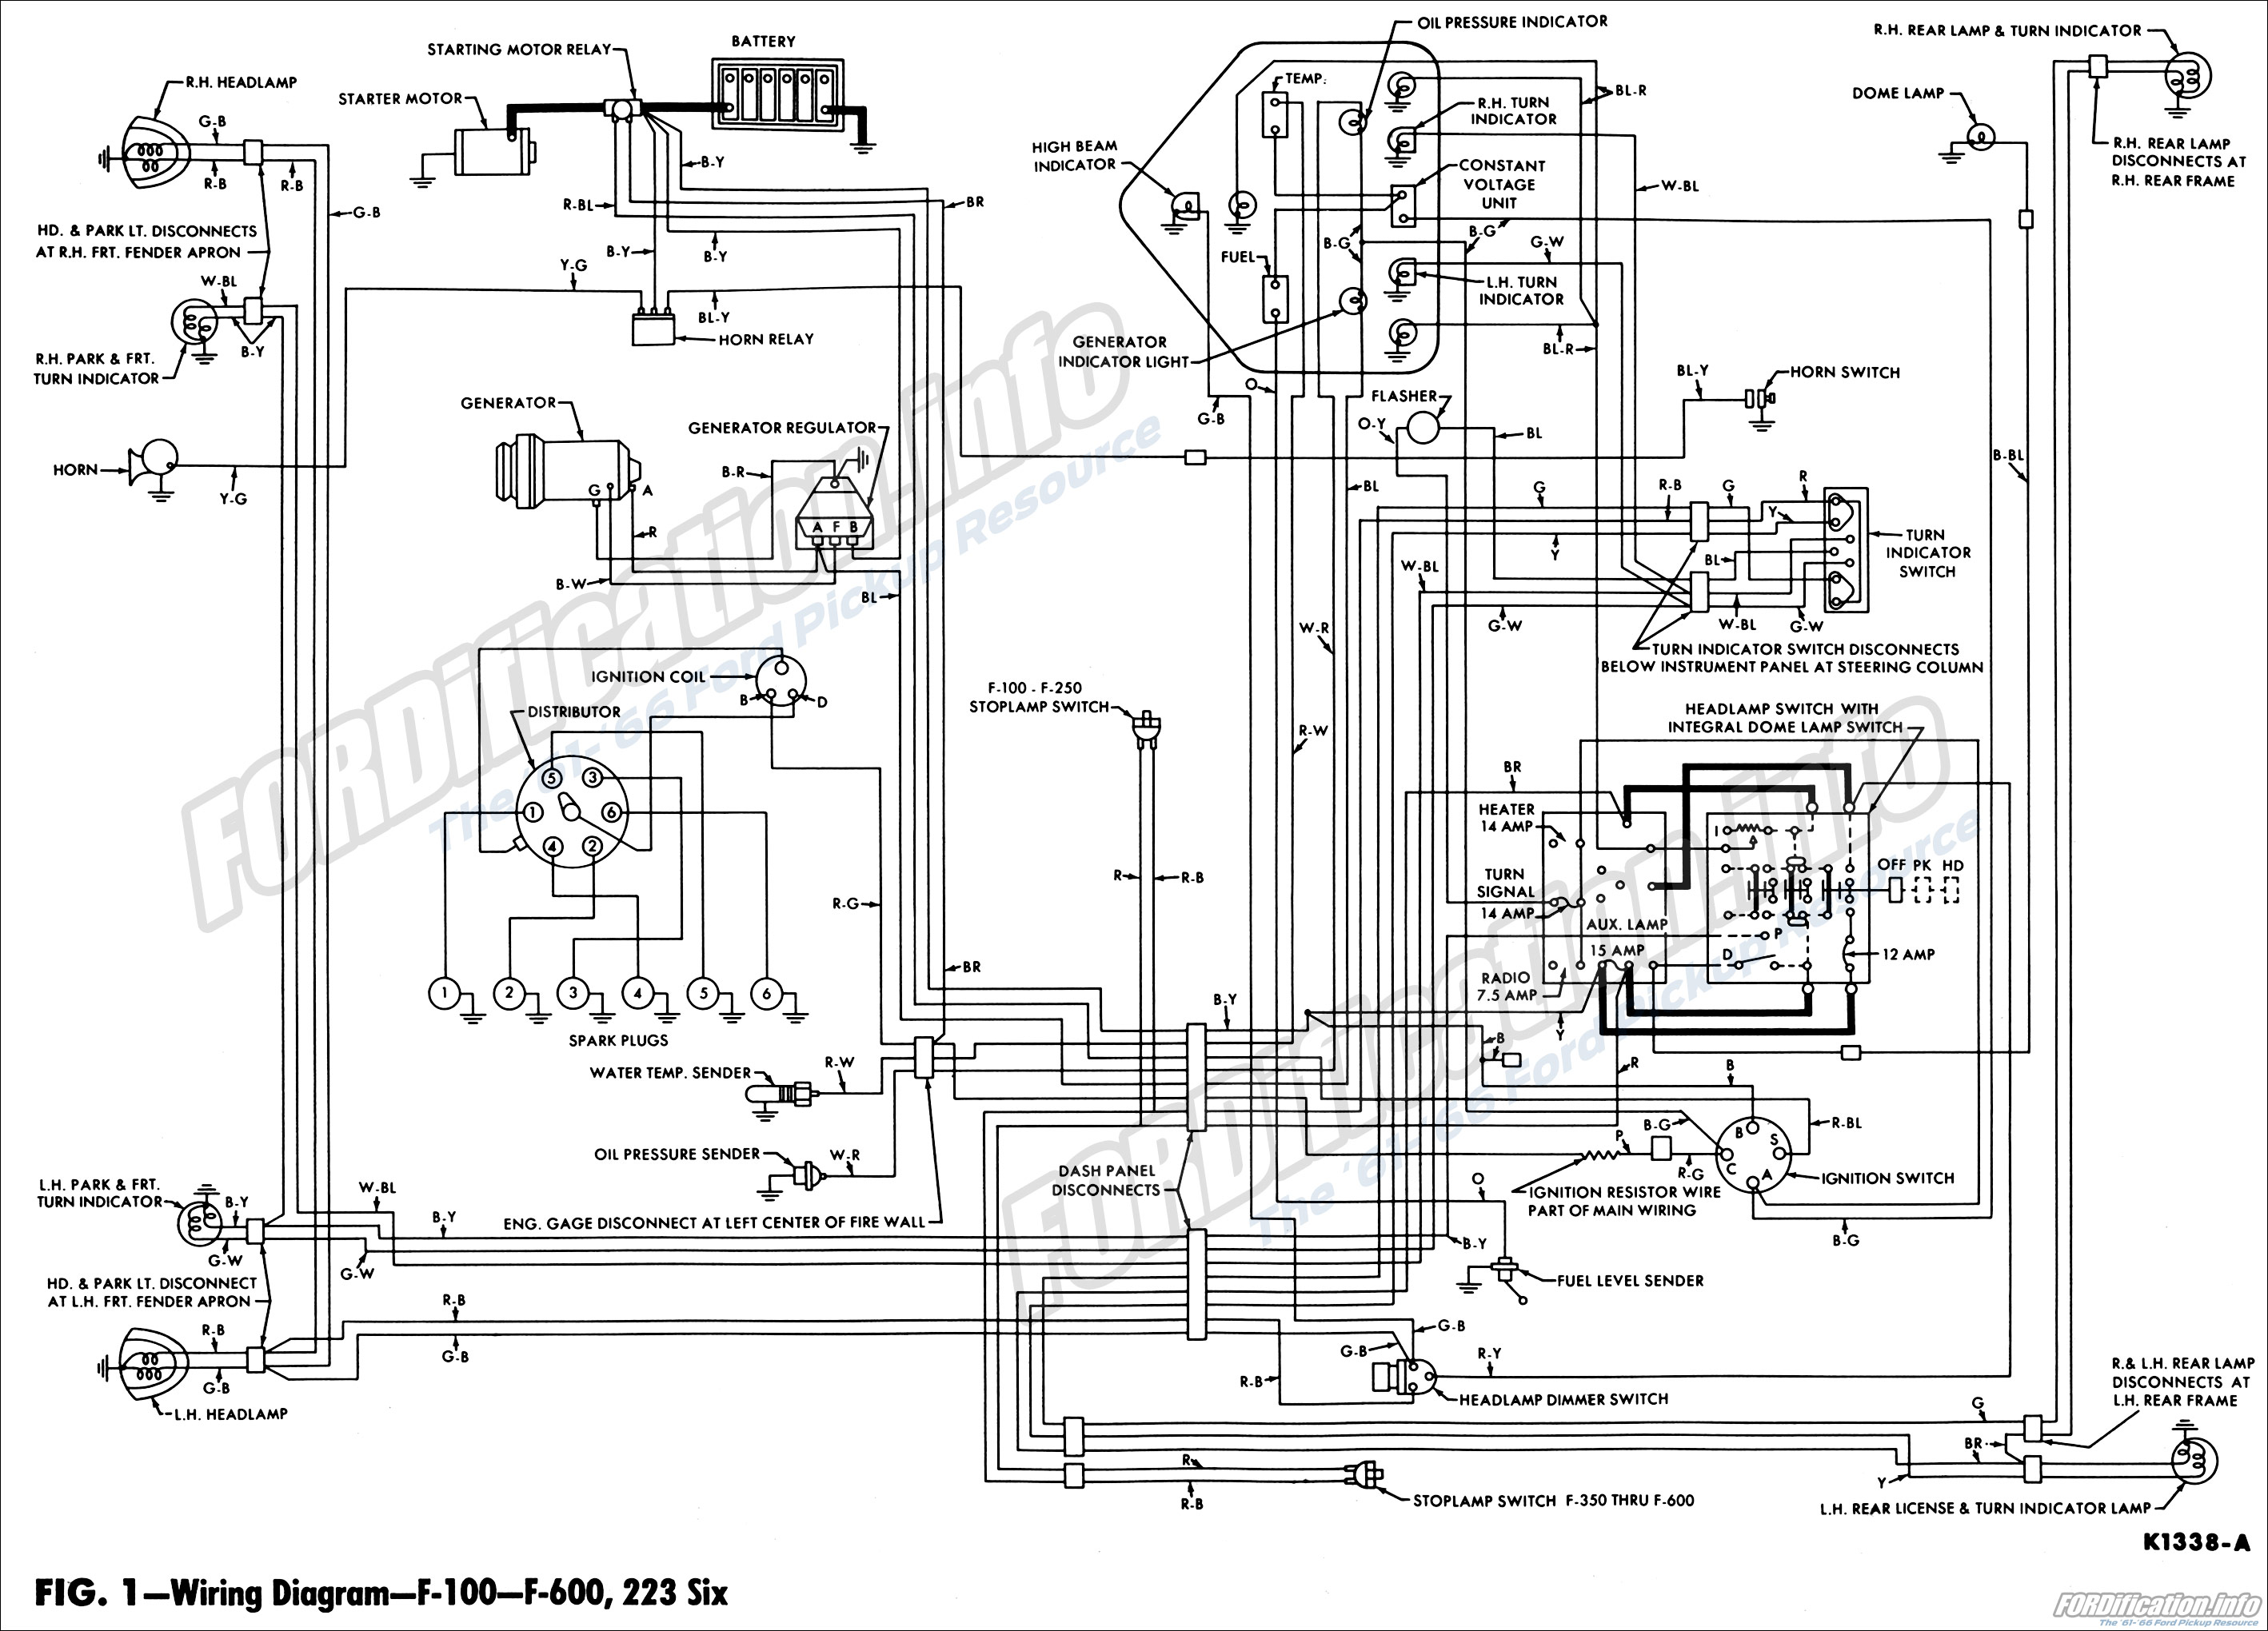 wiring diagram for blinkers on 62 ford f100